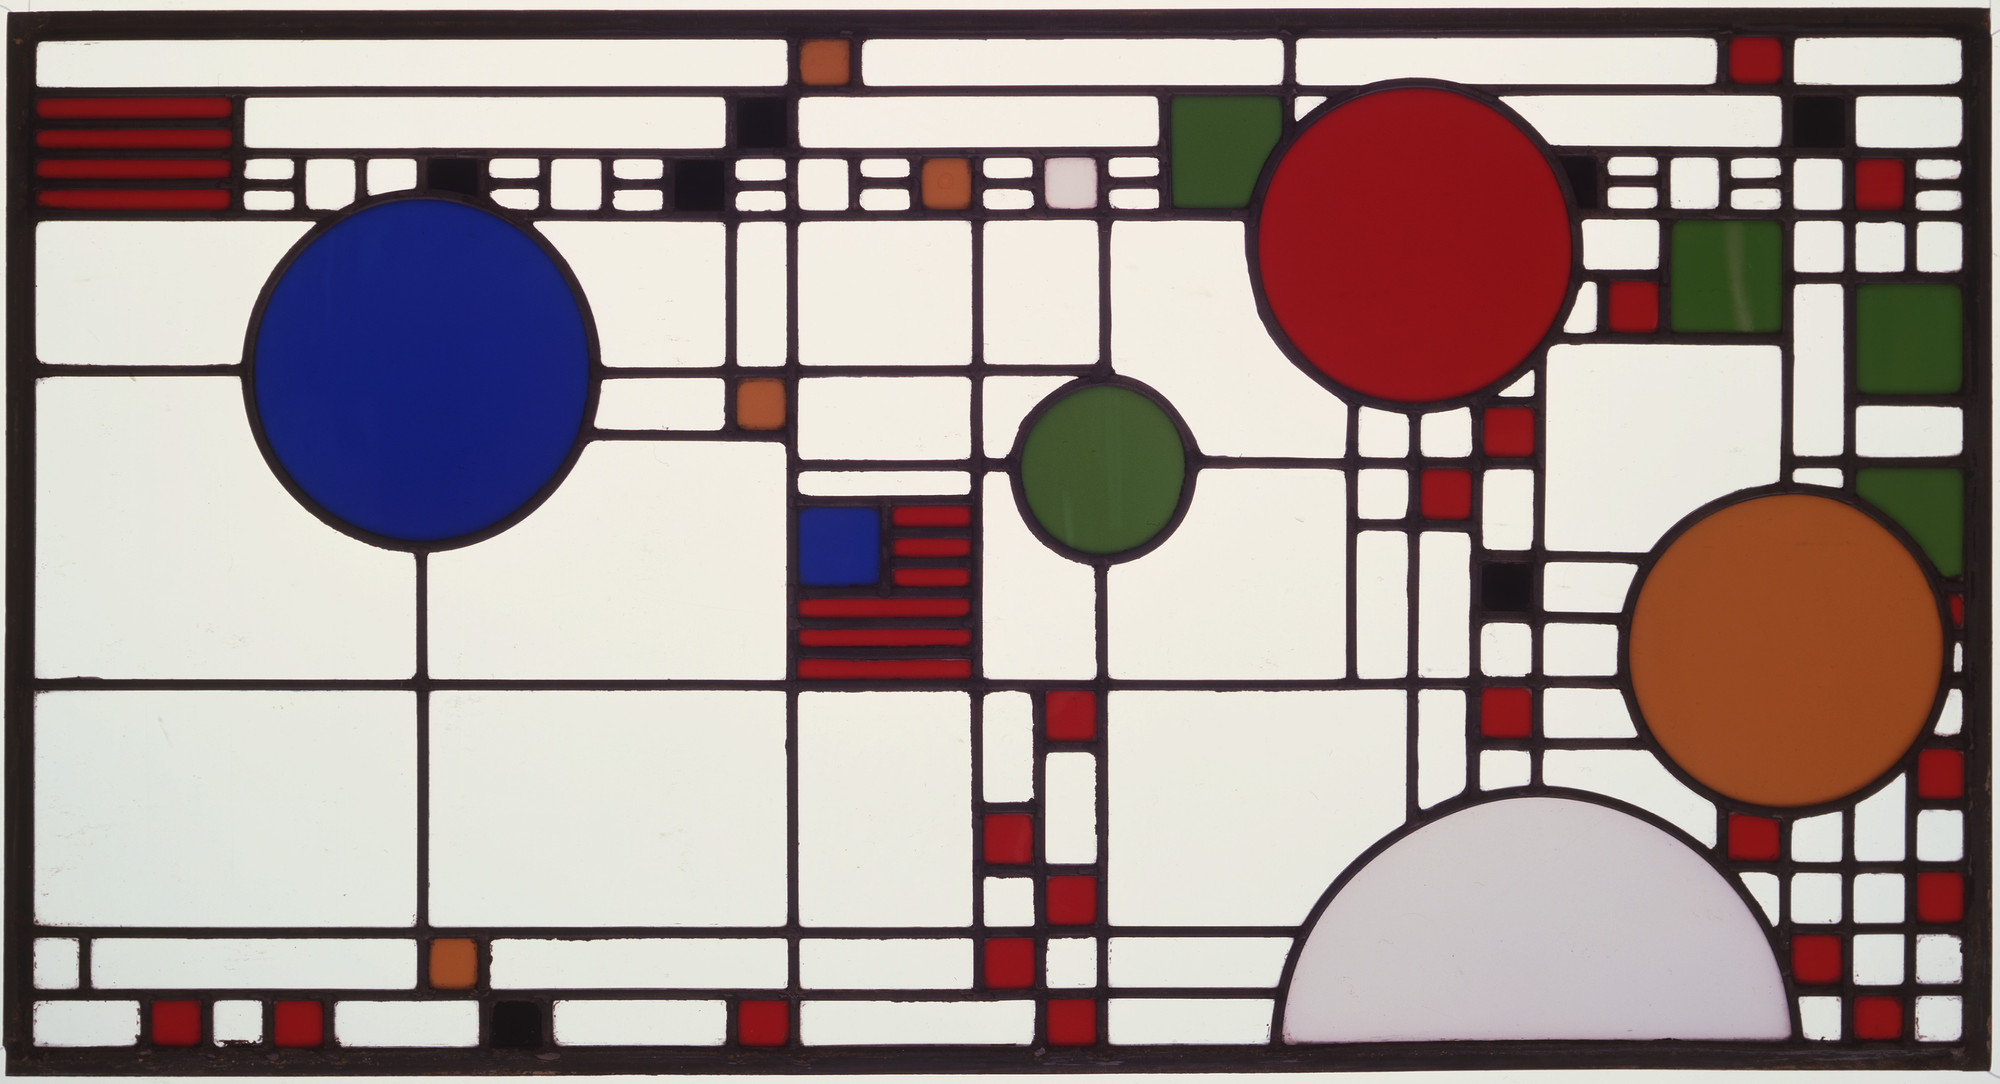 Frank Lloyd Wright. Avery Coonley Playhouse, Riverside, Illinois (Clerestory windows). 1912